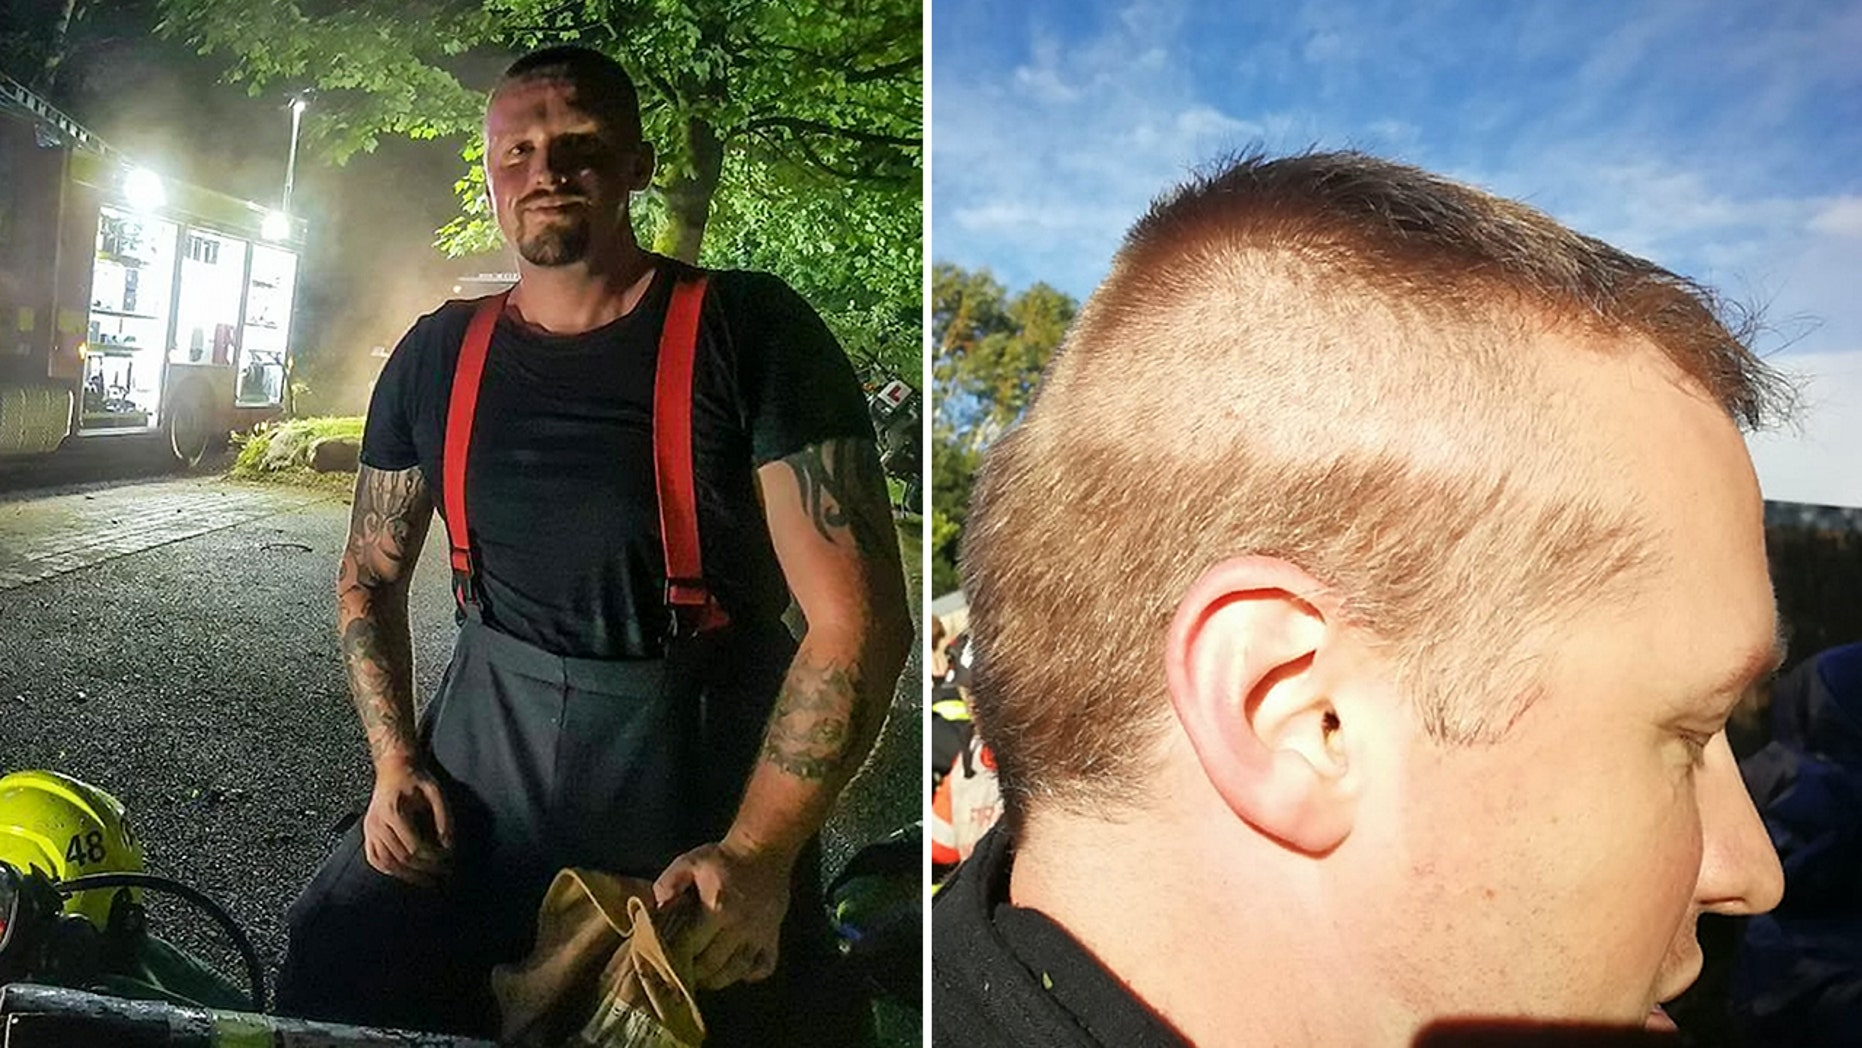 A firefighter got called out to an emergency mid-haircut, leaving him with an interestinglook.